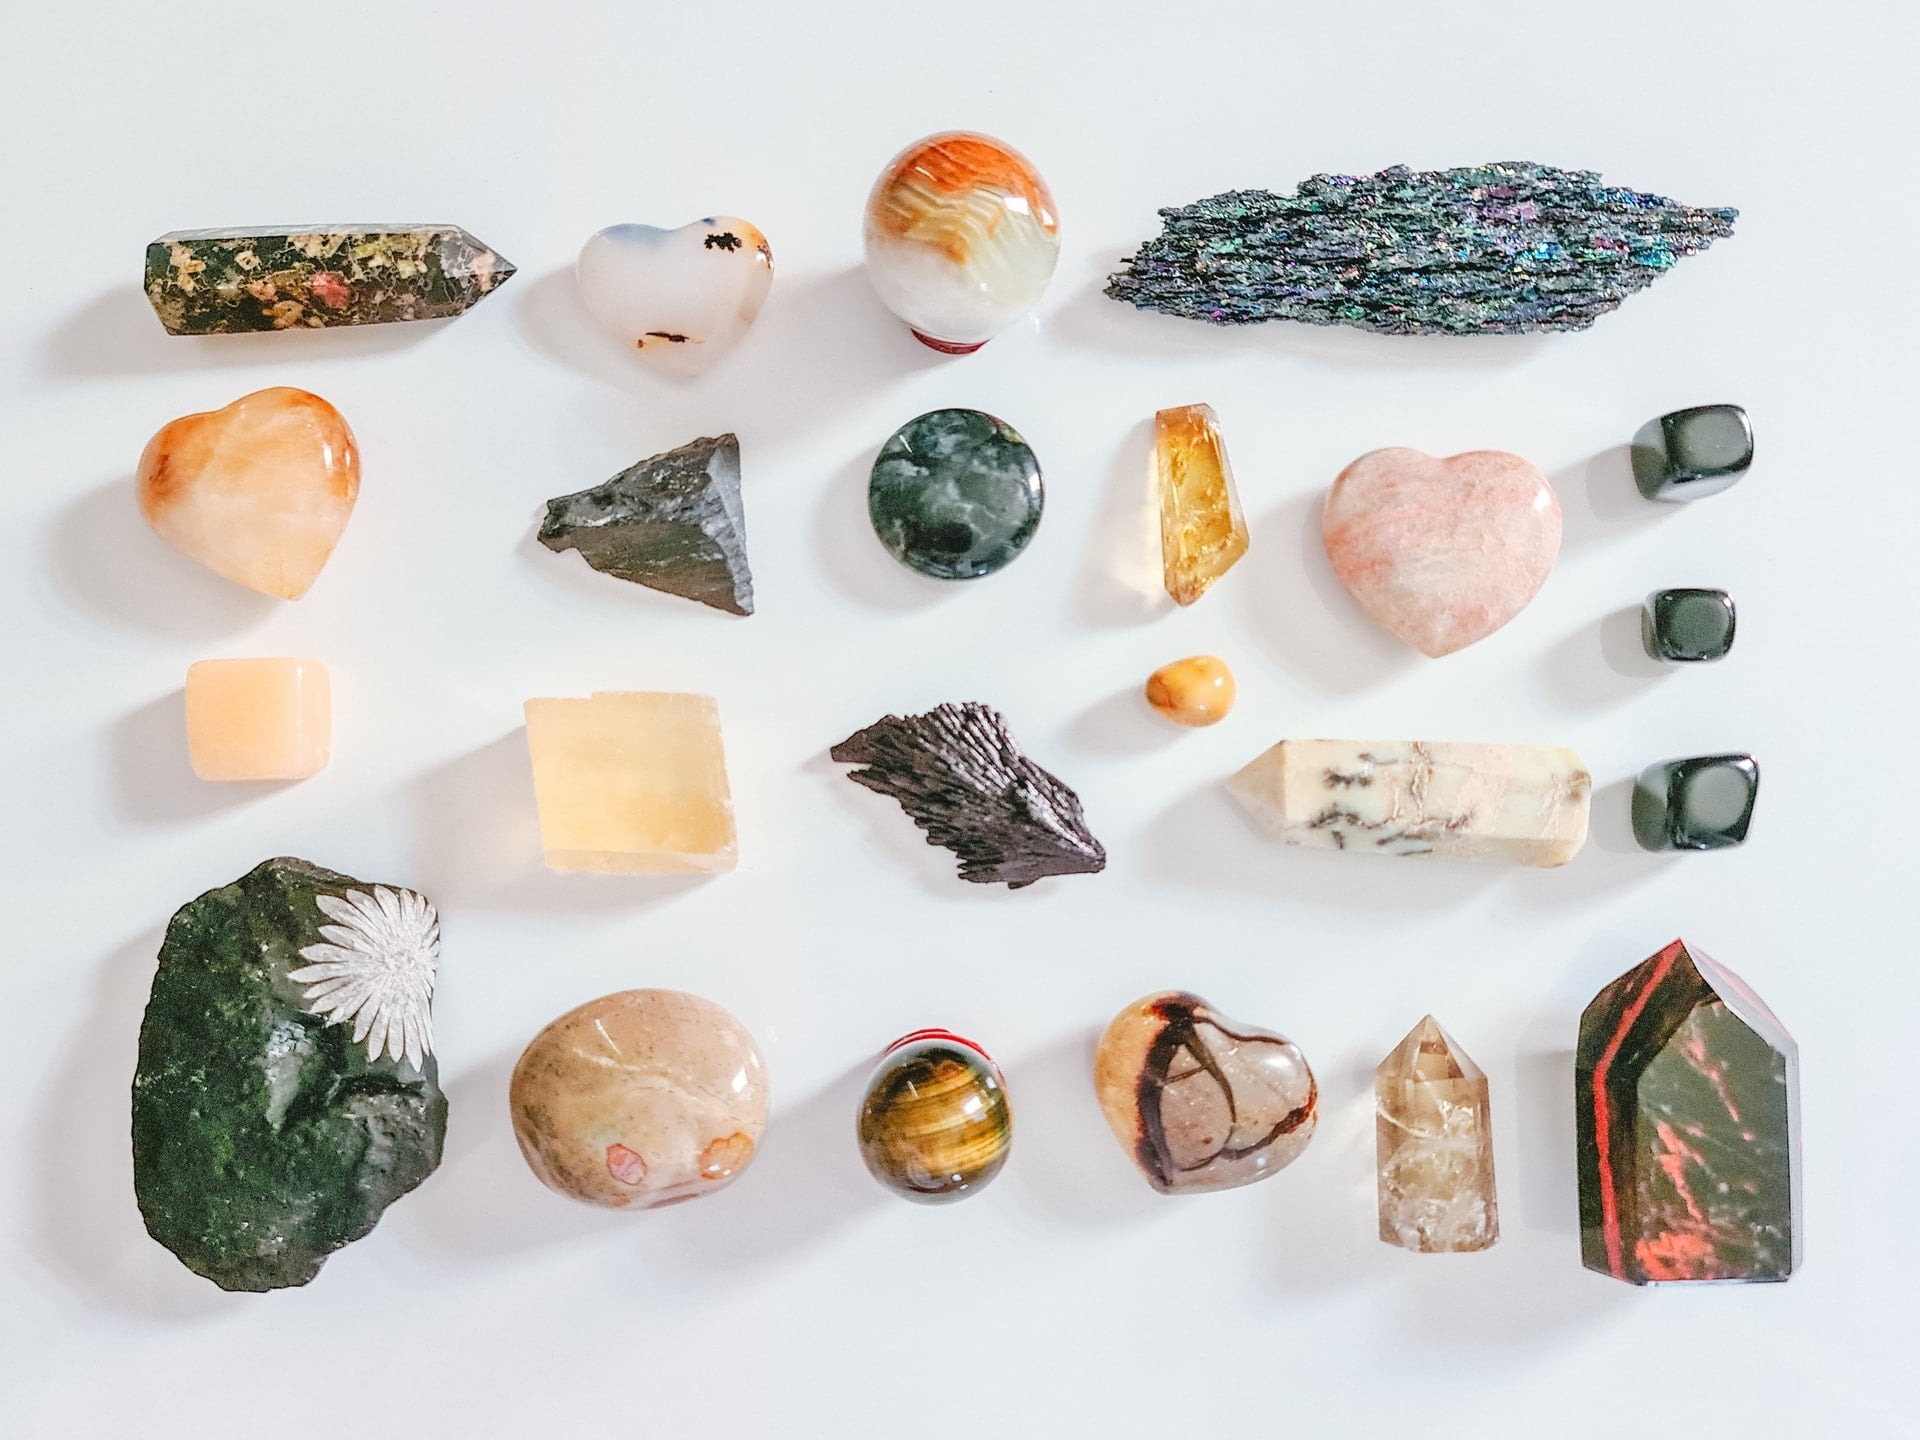 How To Use Crystals For Cleansing Crystals